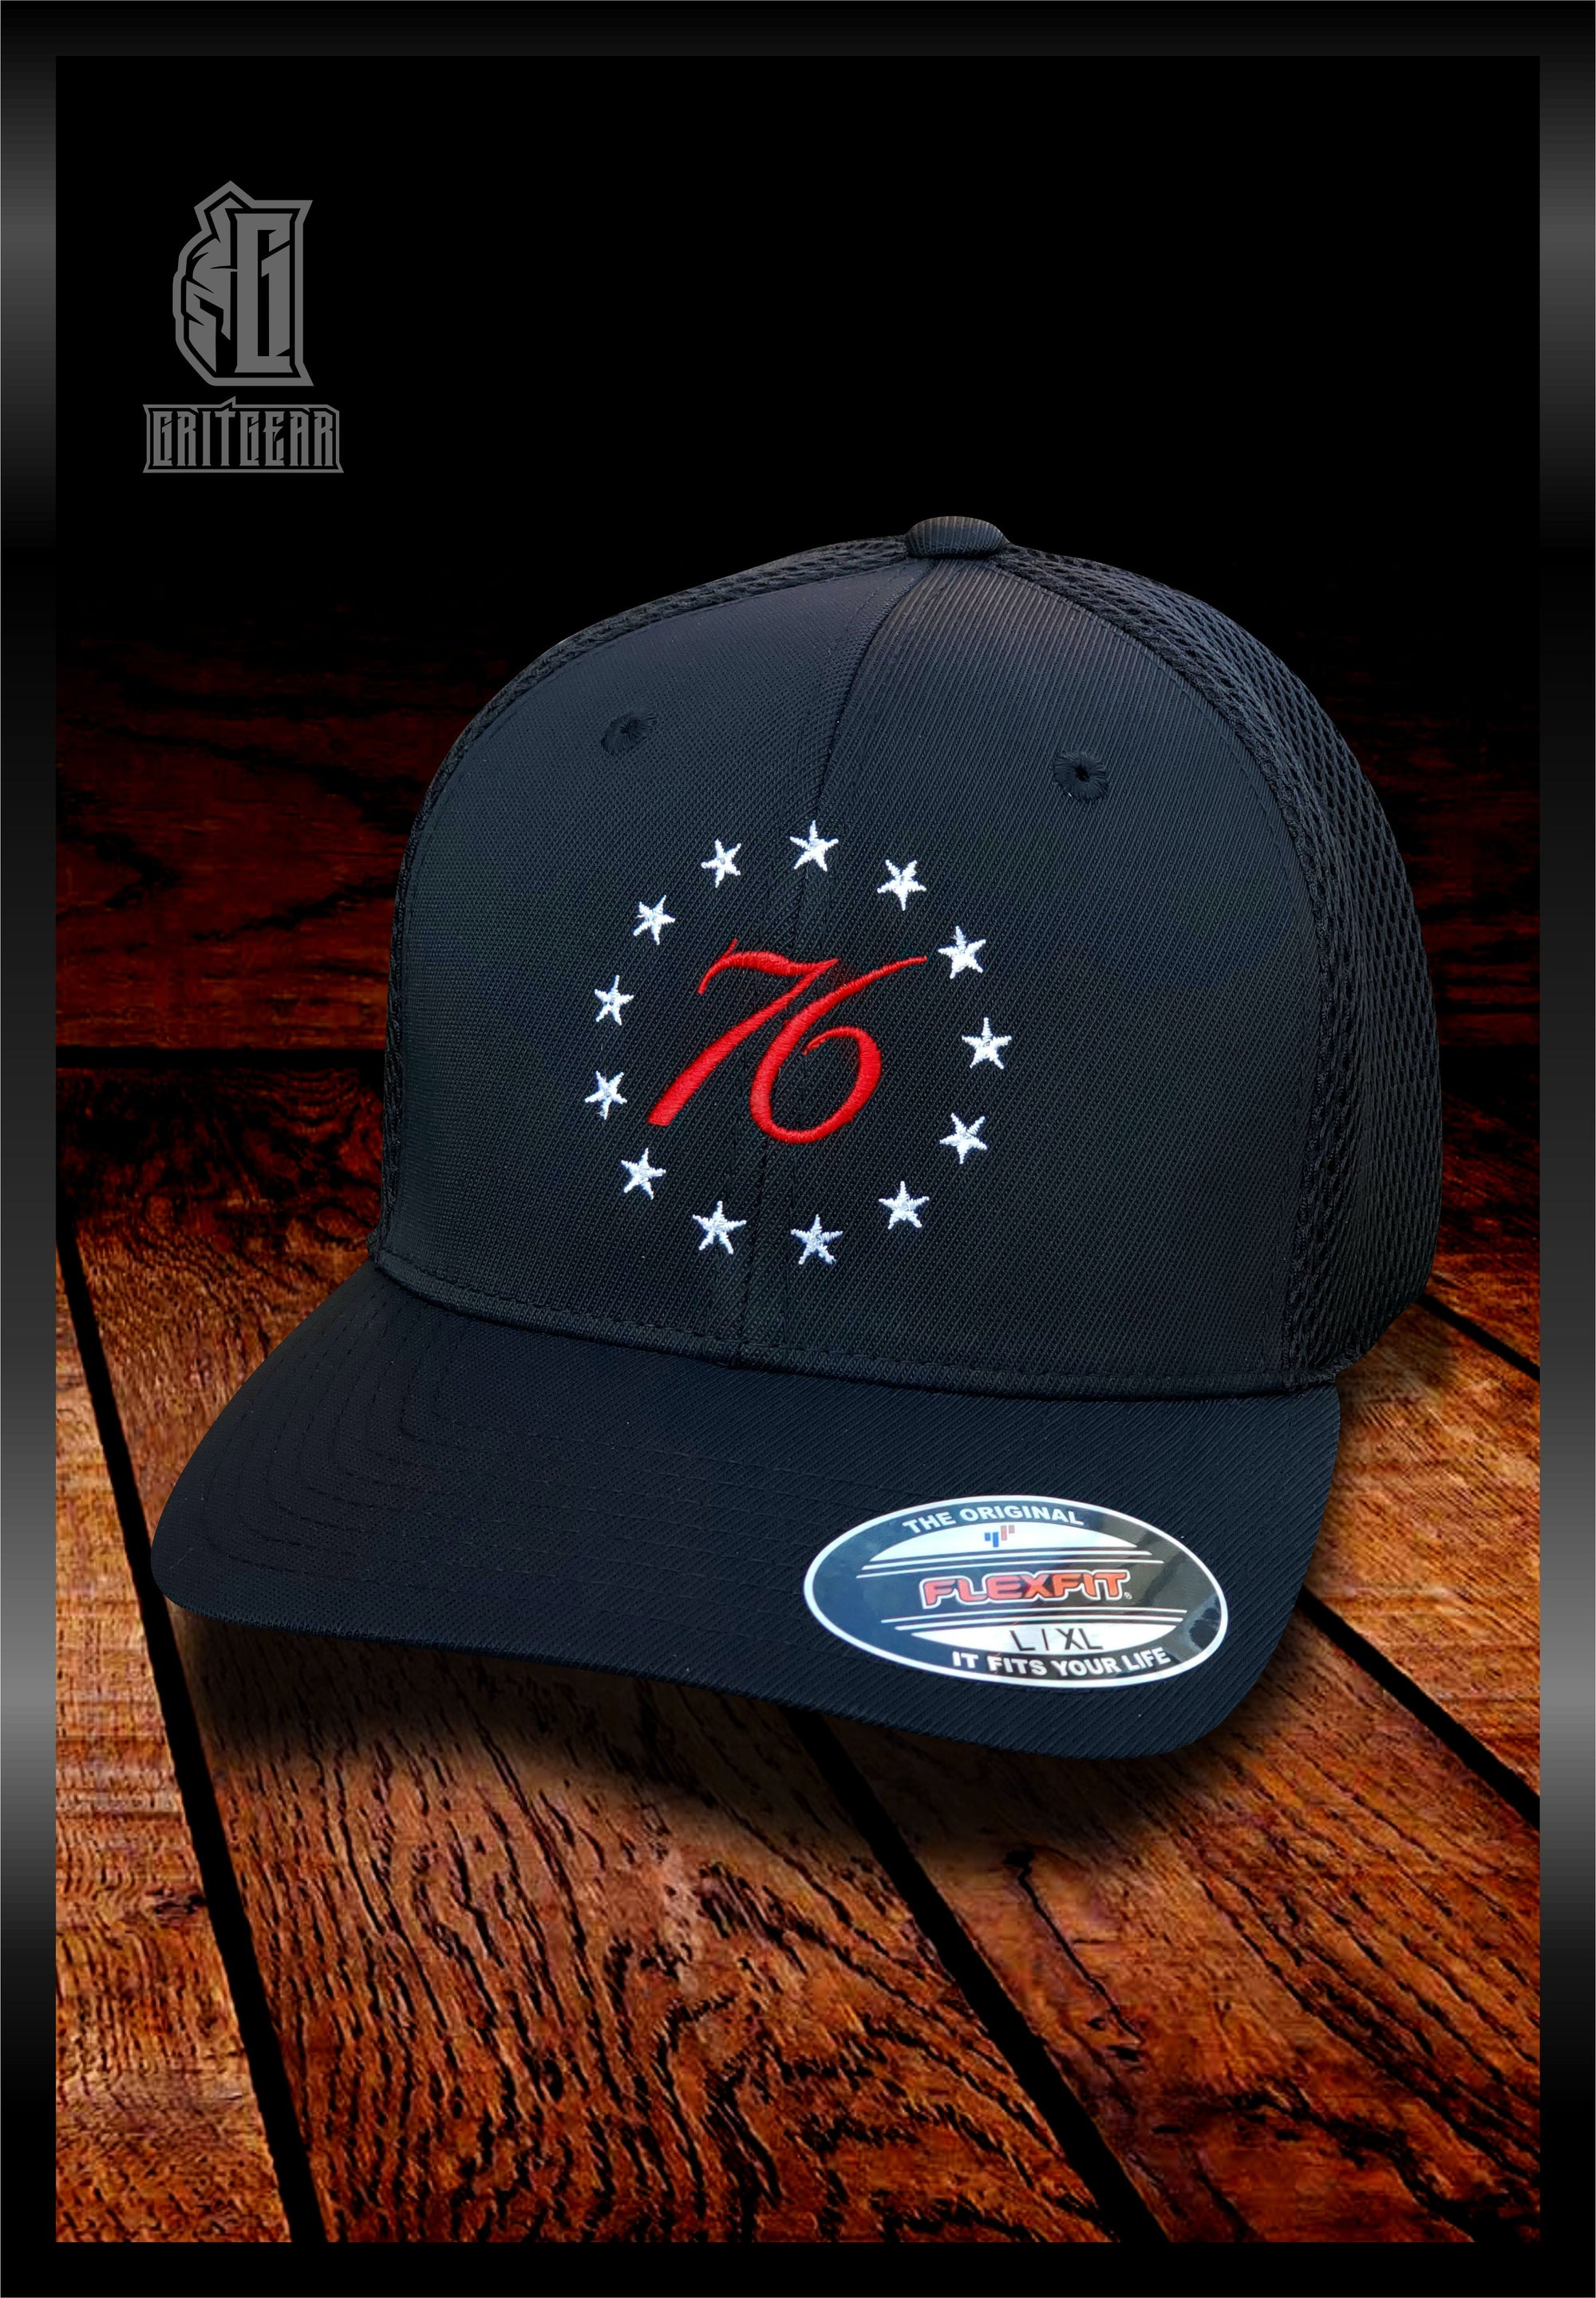 13 Star 76 Embroidered Hat | Grit Gear Apparel®